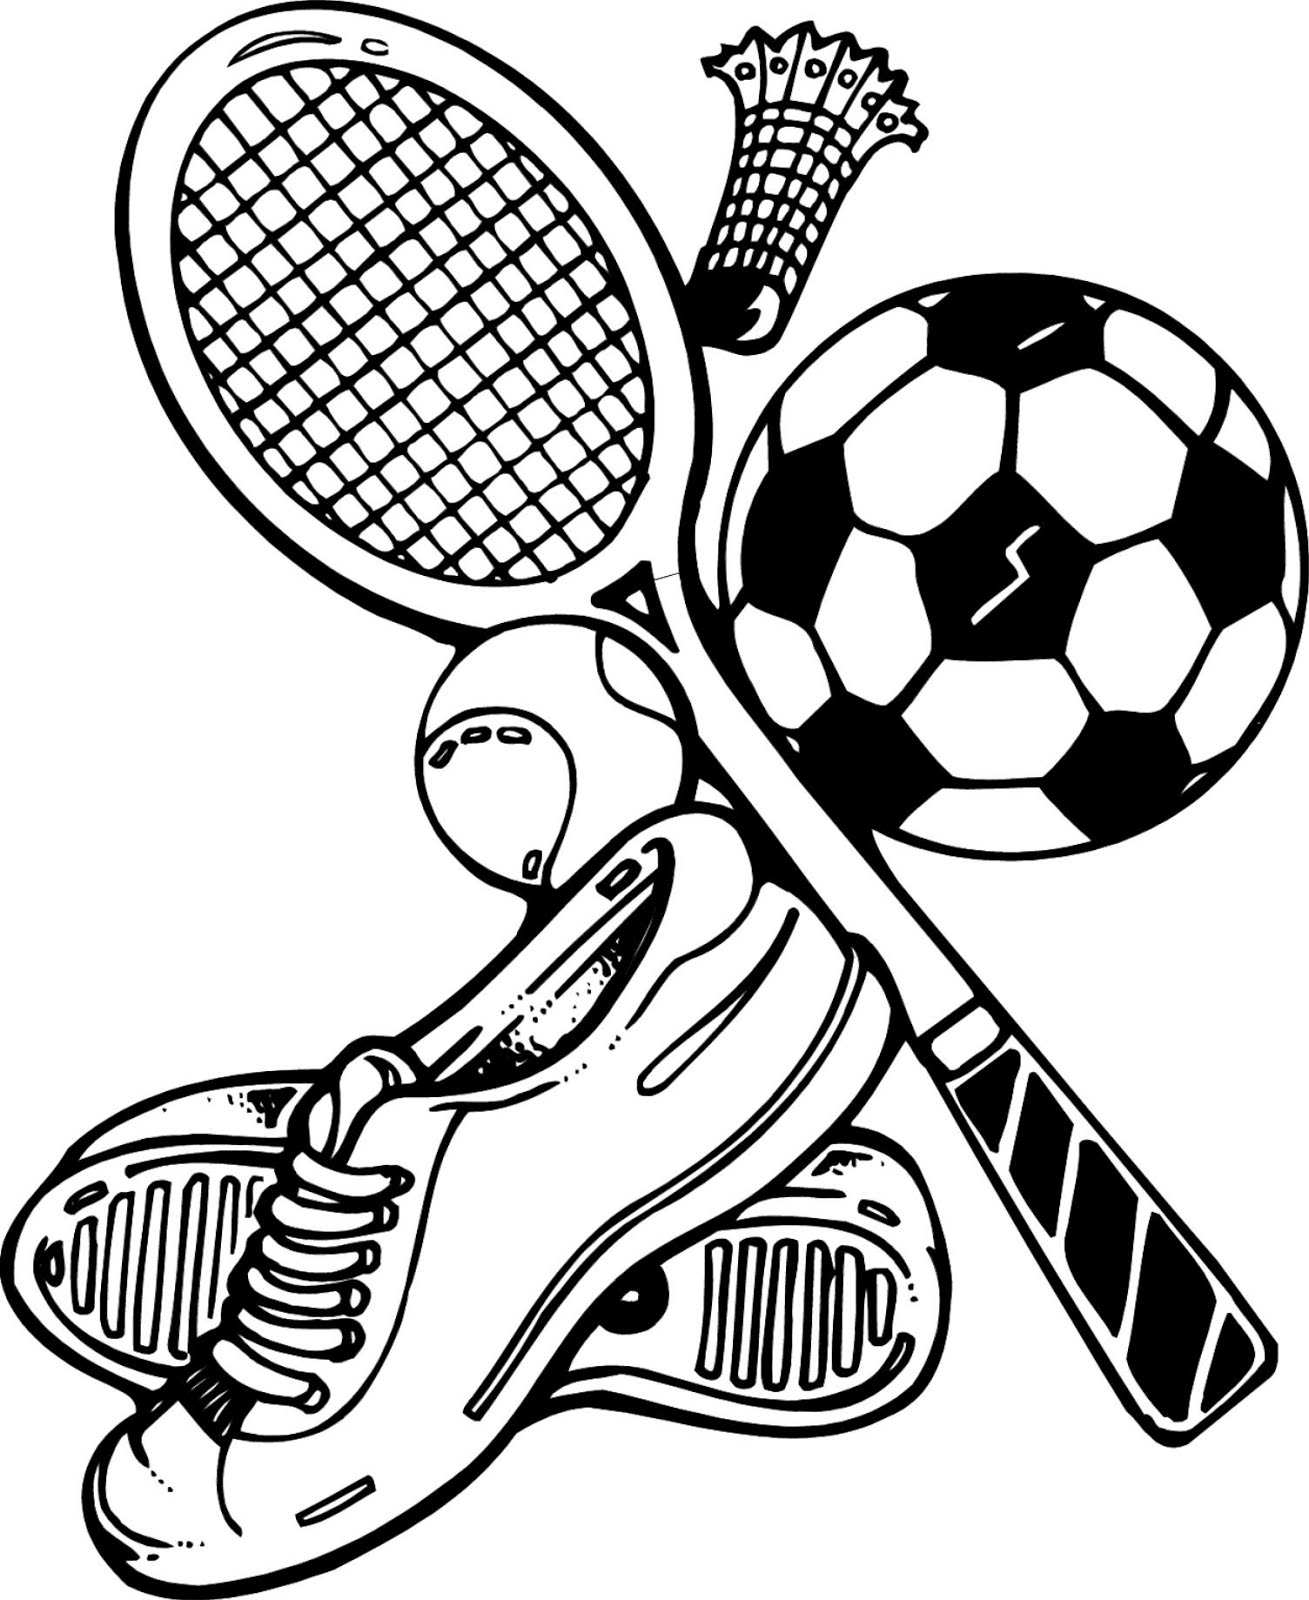 free sports coloring pages printable - photo#21